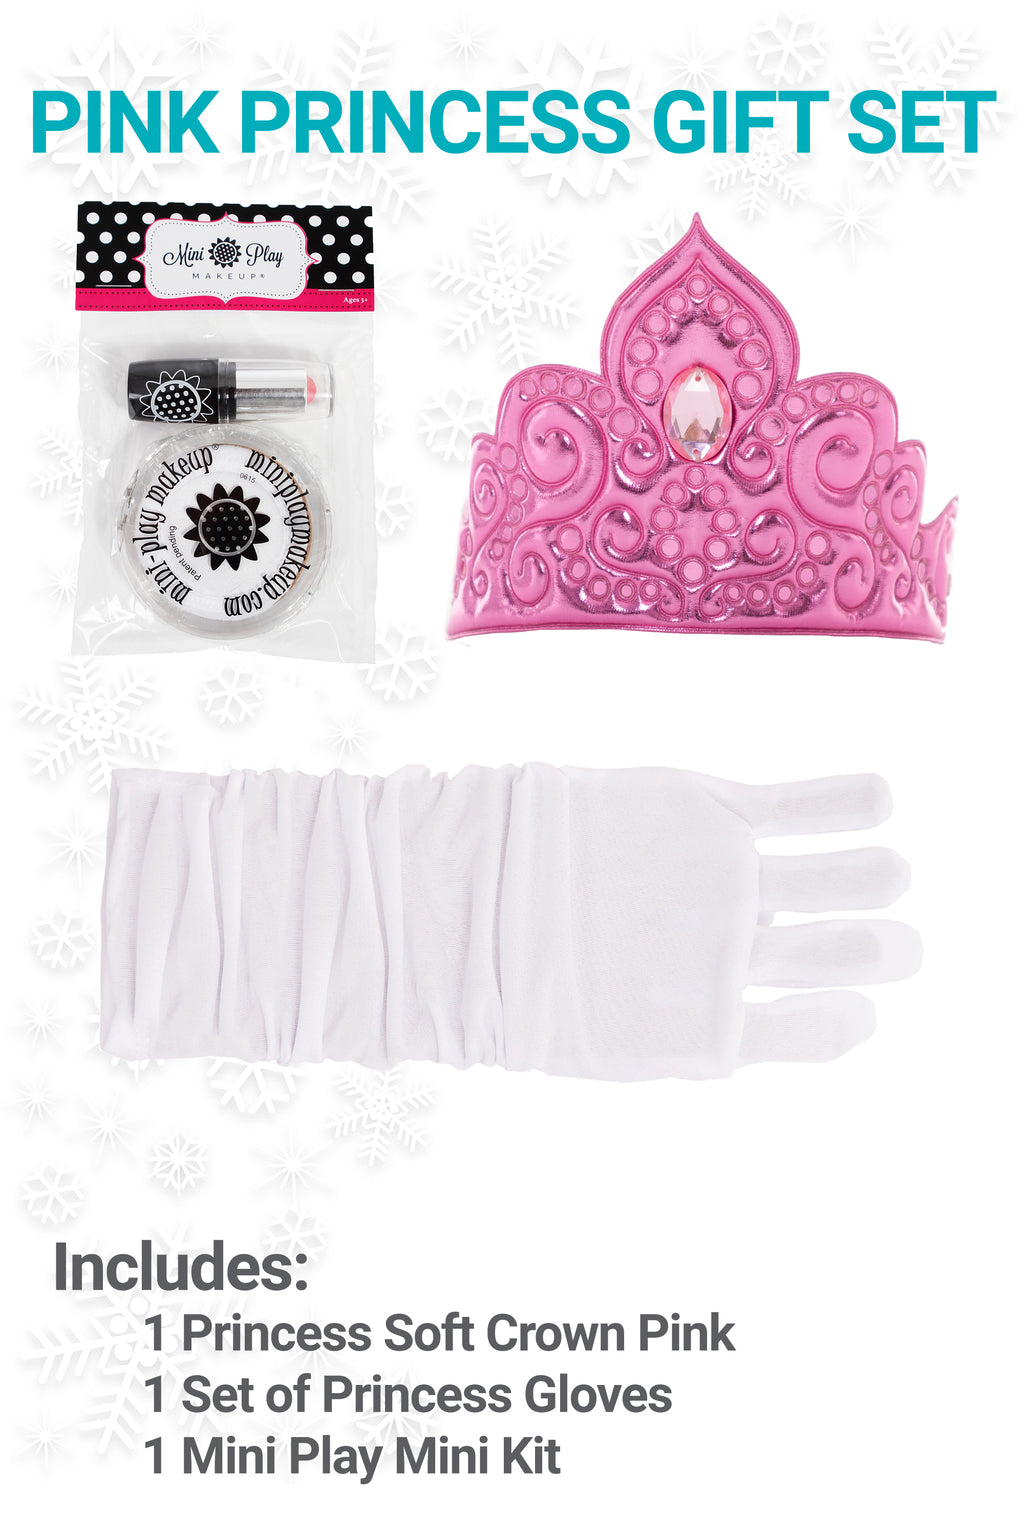 Pink Princess Gift Set